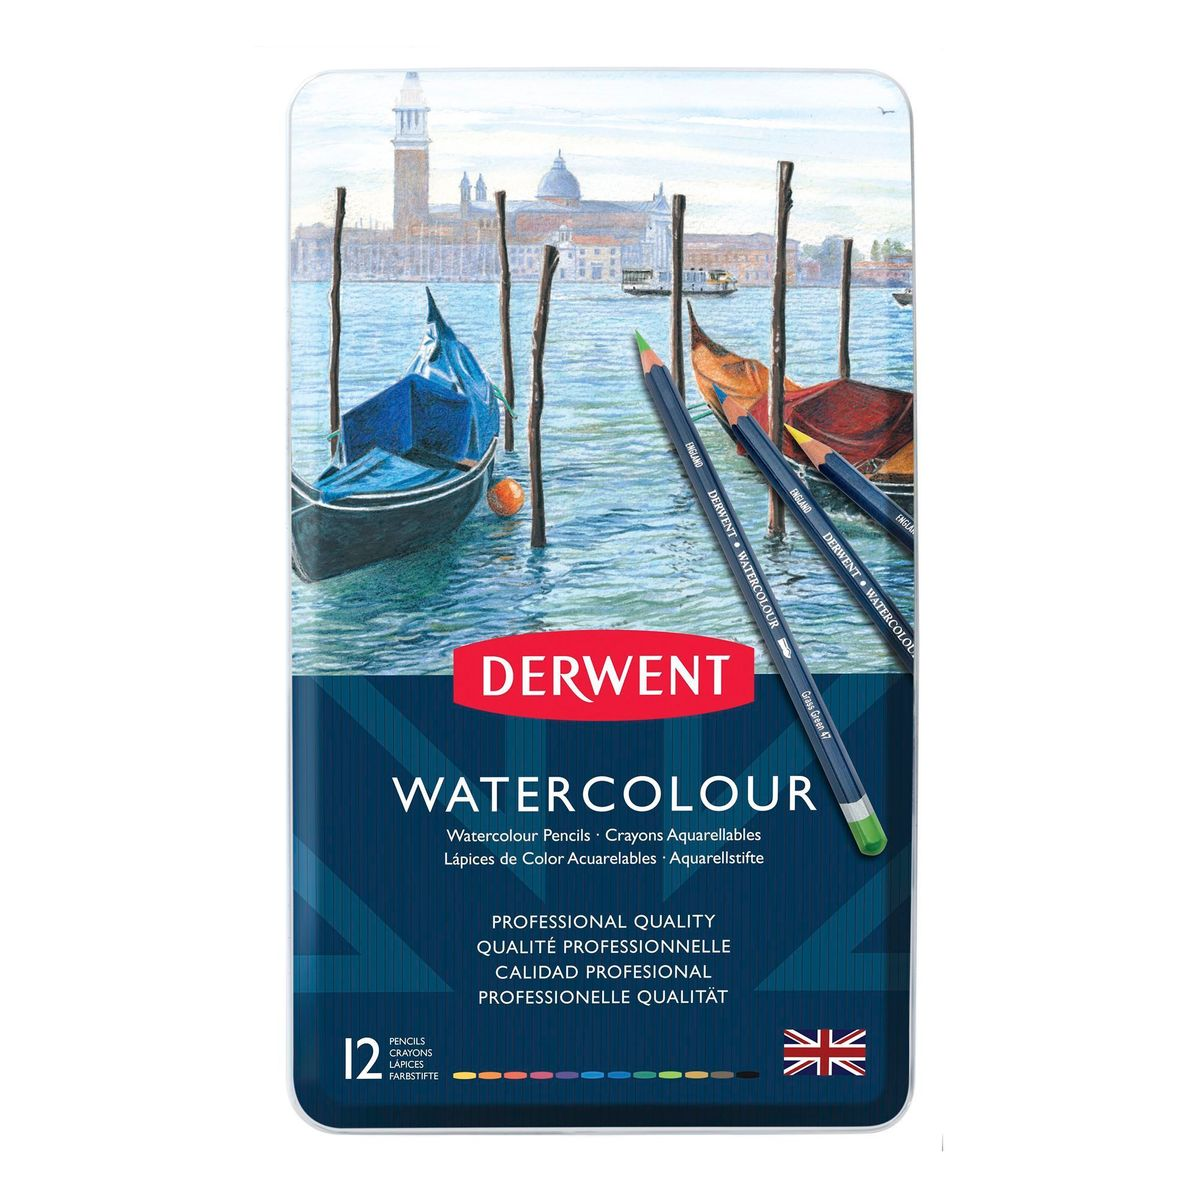 Kit Lápis Derwent Watercolour C/ 12 Cores